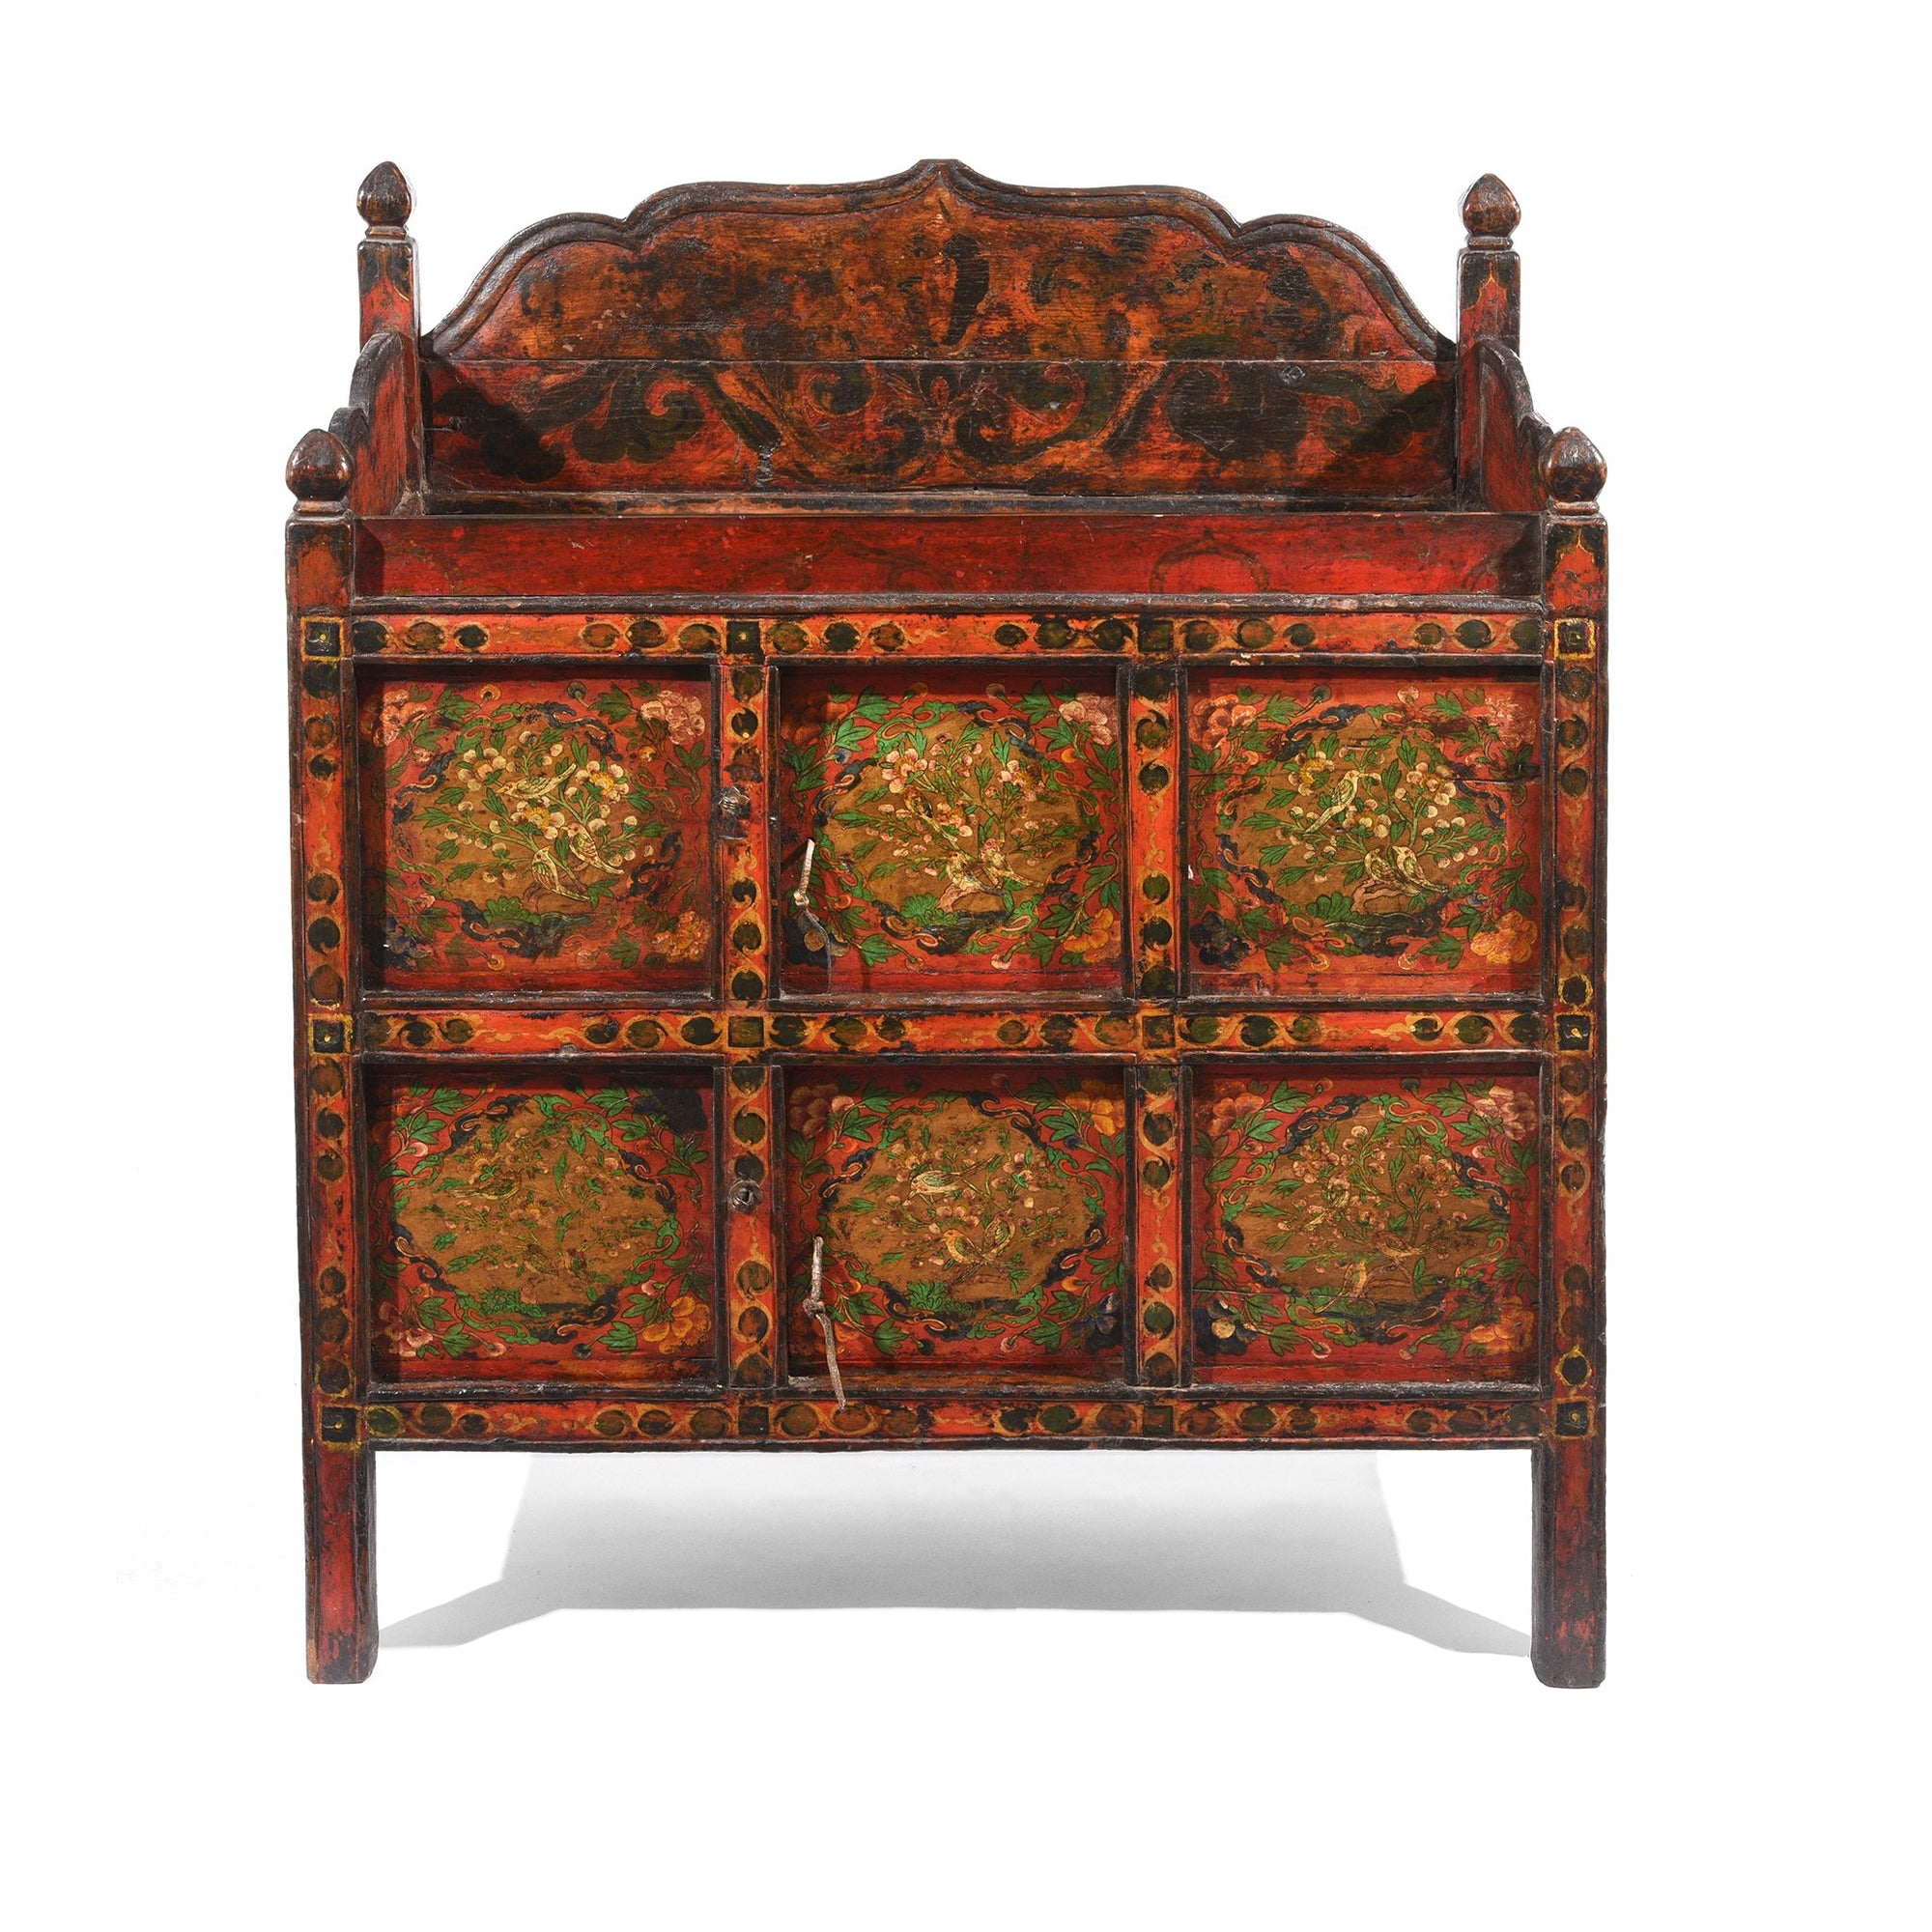 Painted Altar Cabinet From Tibet - 18thC